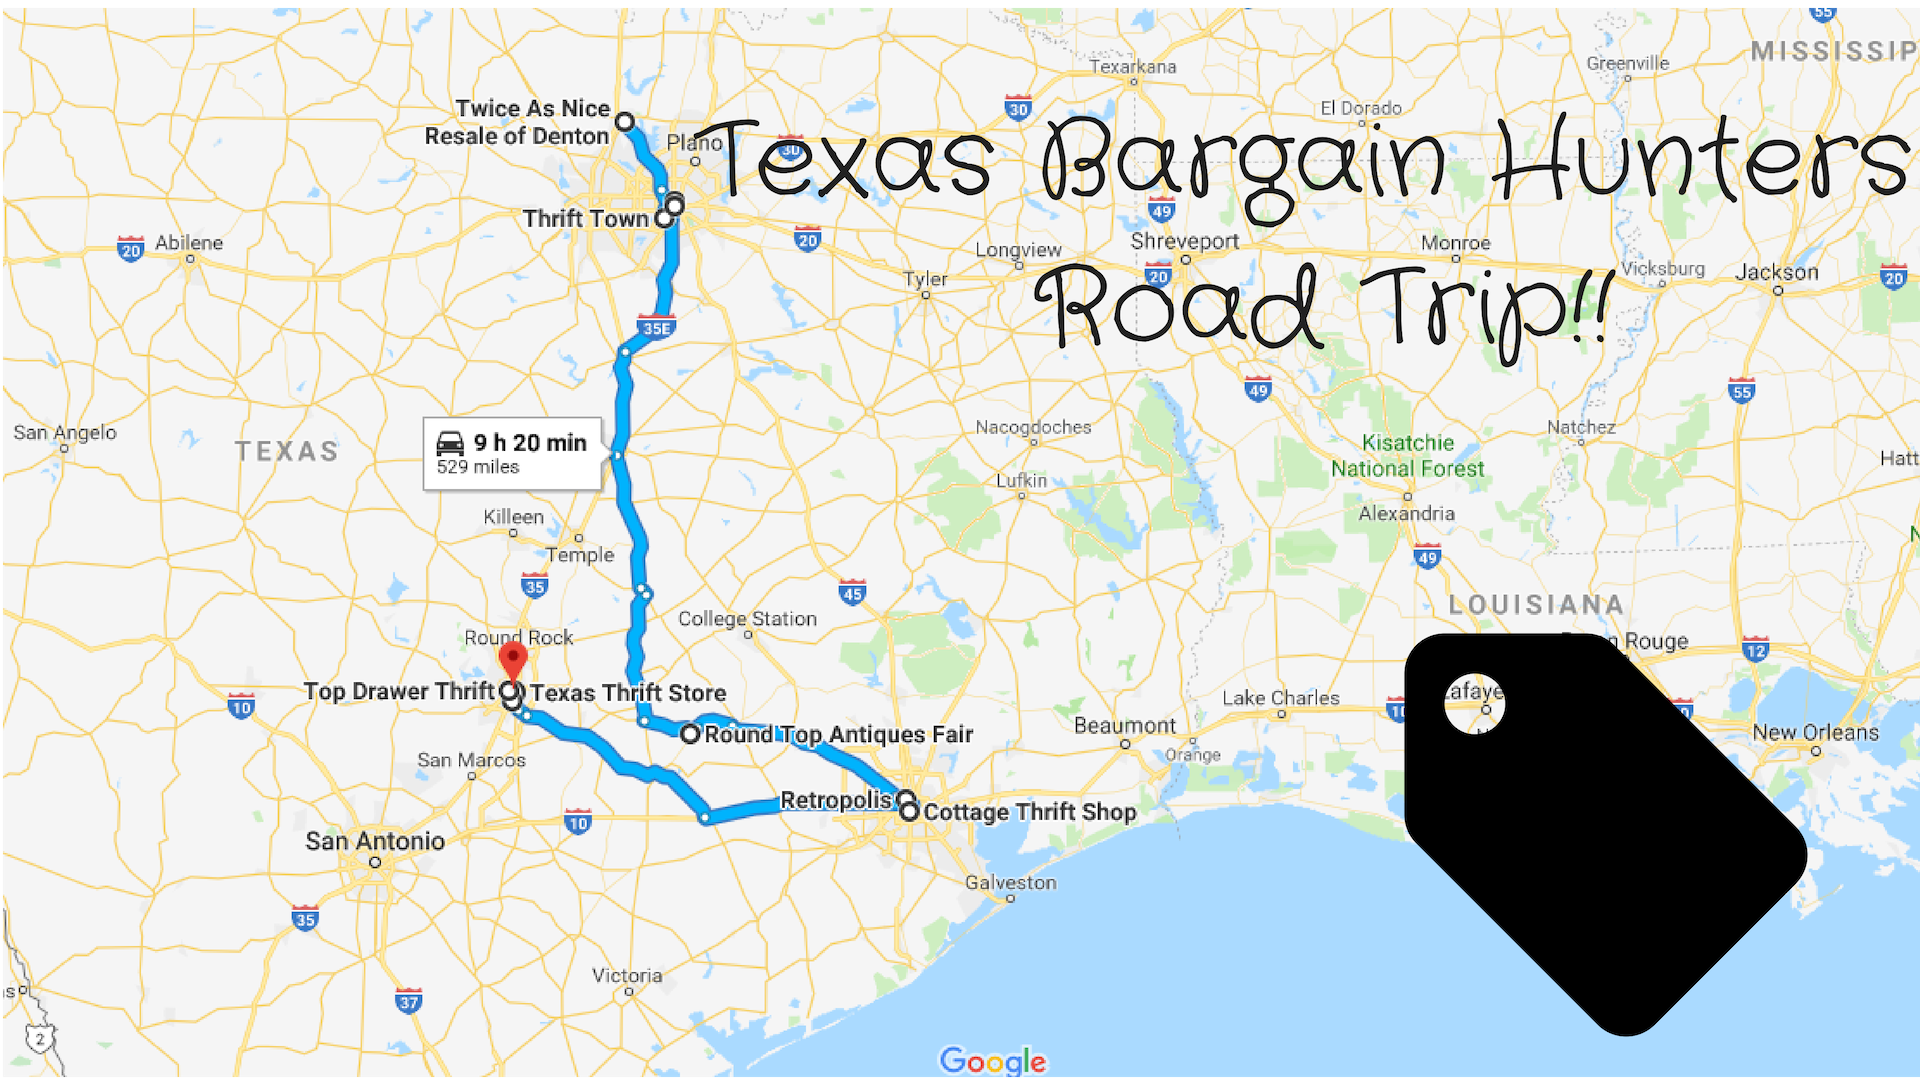 Road Trip To The 10 Best Thrift Stores in Texas Map Of Antique Places On Round Top Texas Route on